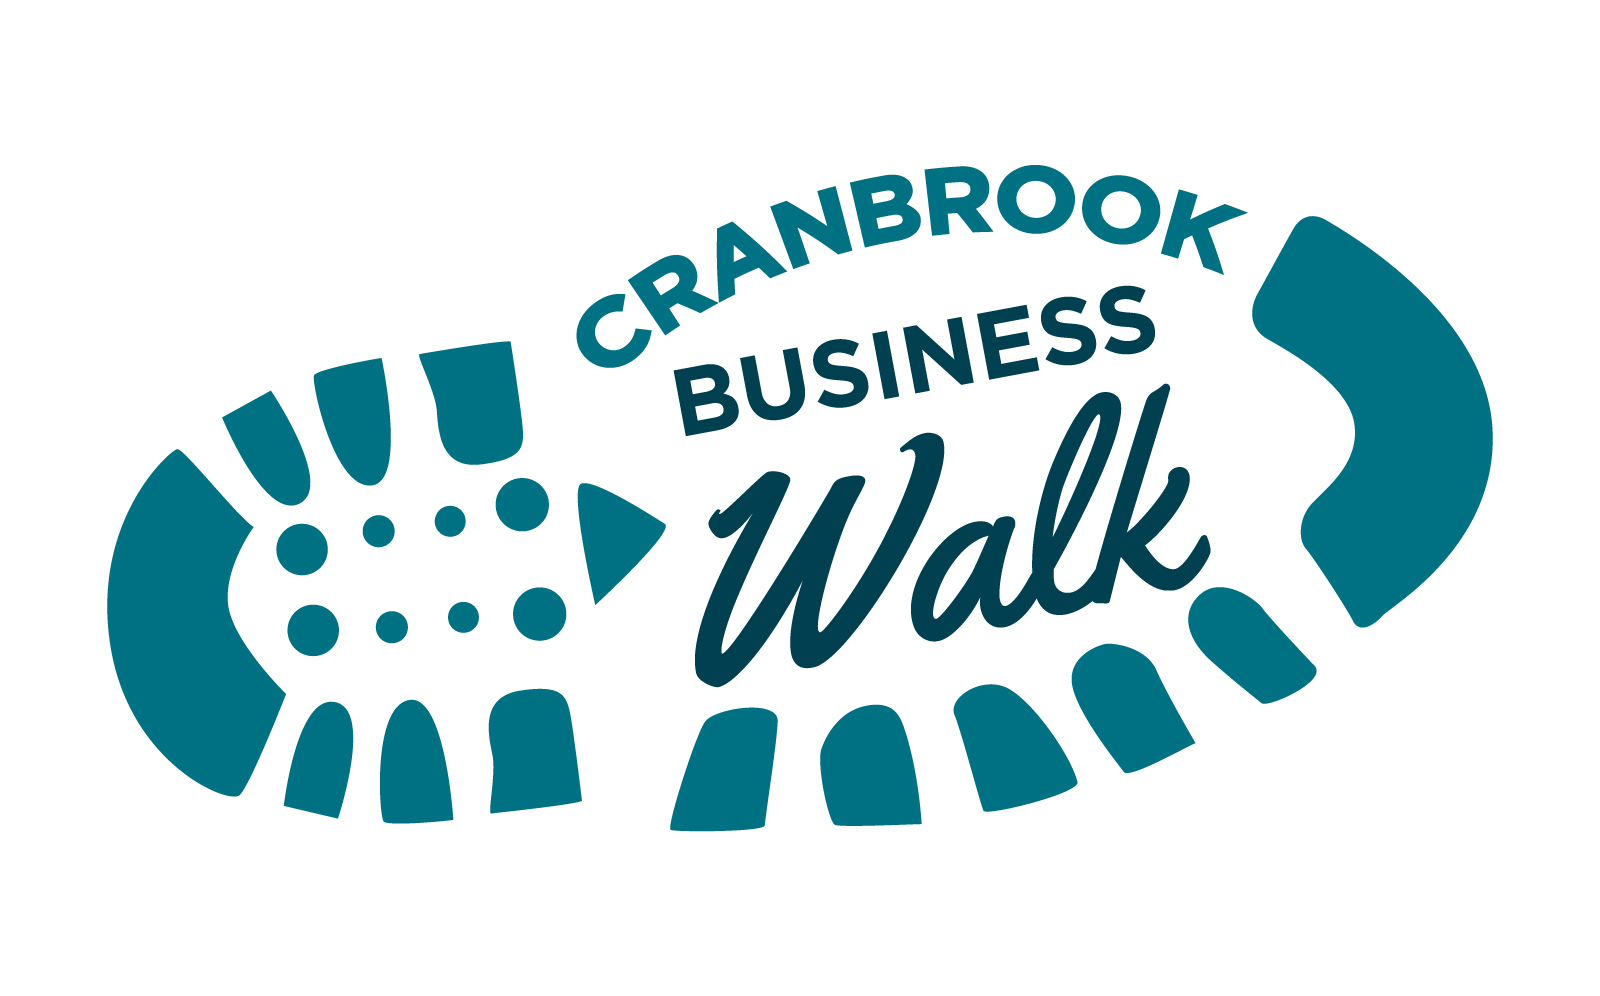 Some Cranbrook businesses identify finding employees as an issue